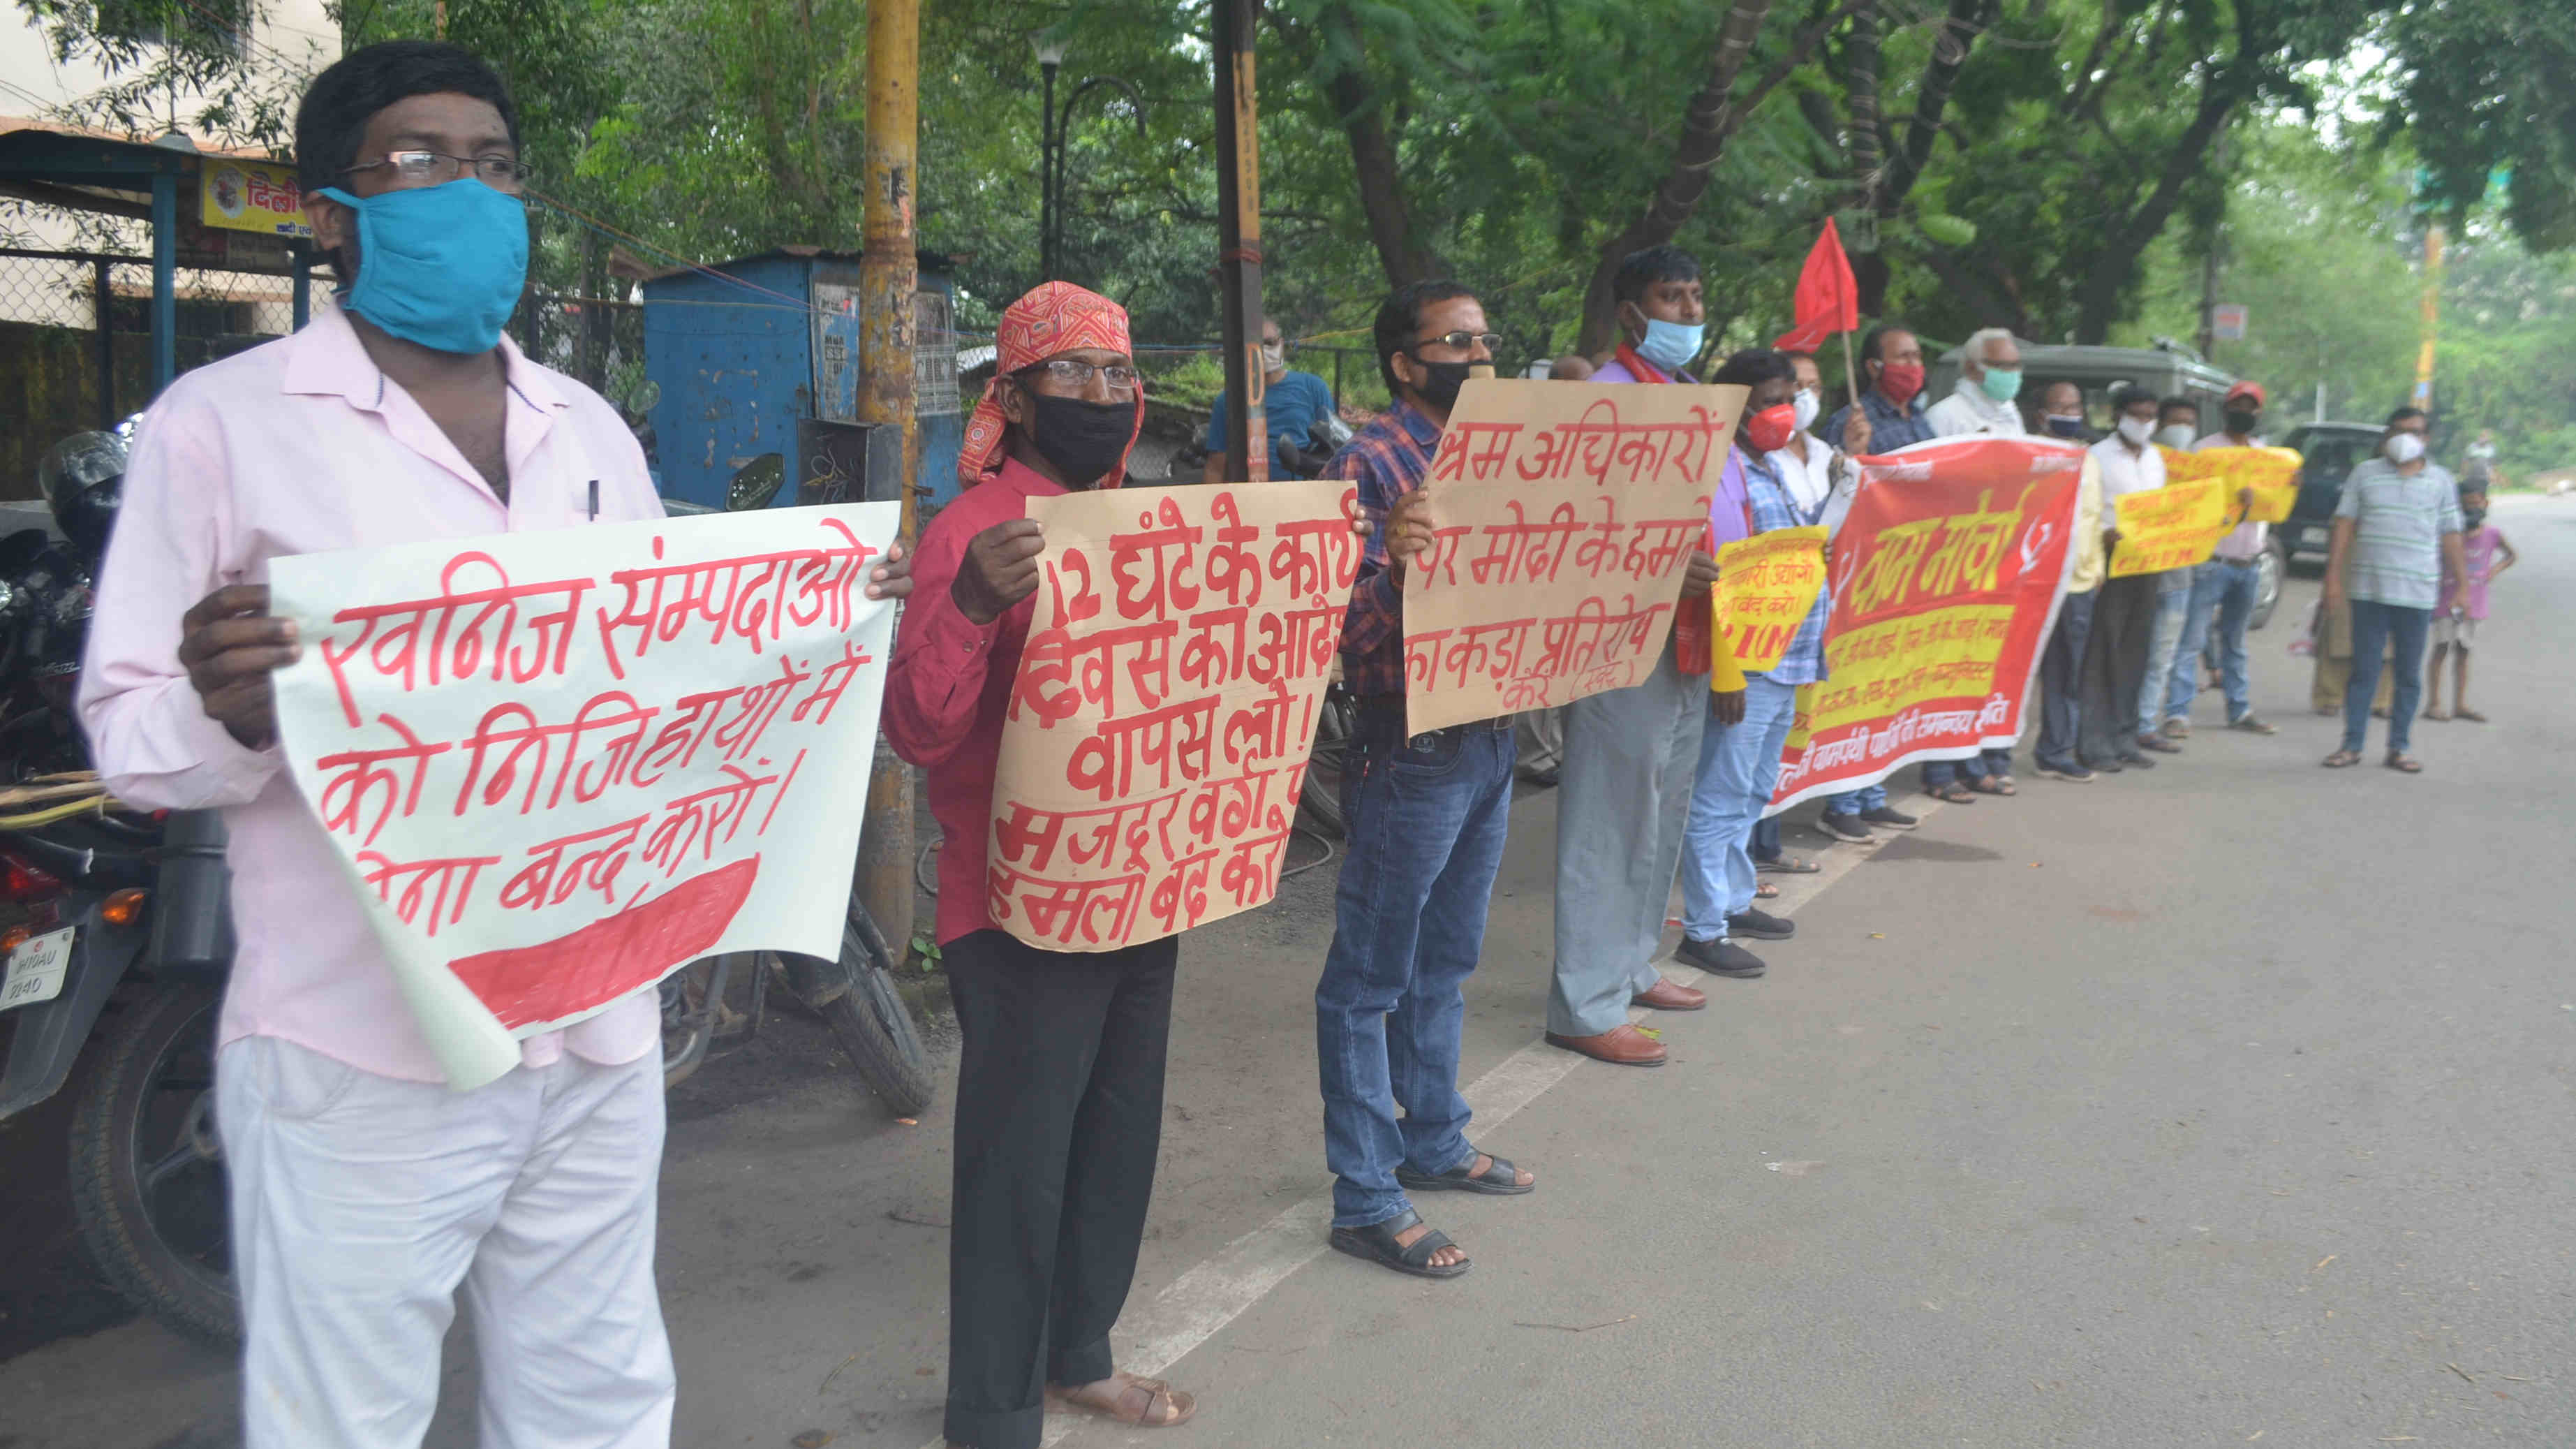 Left party worker's protest against commercial mining at Randhir Verma Chowk Dhanbad on Sunday.